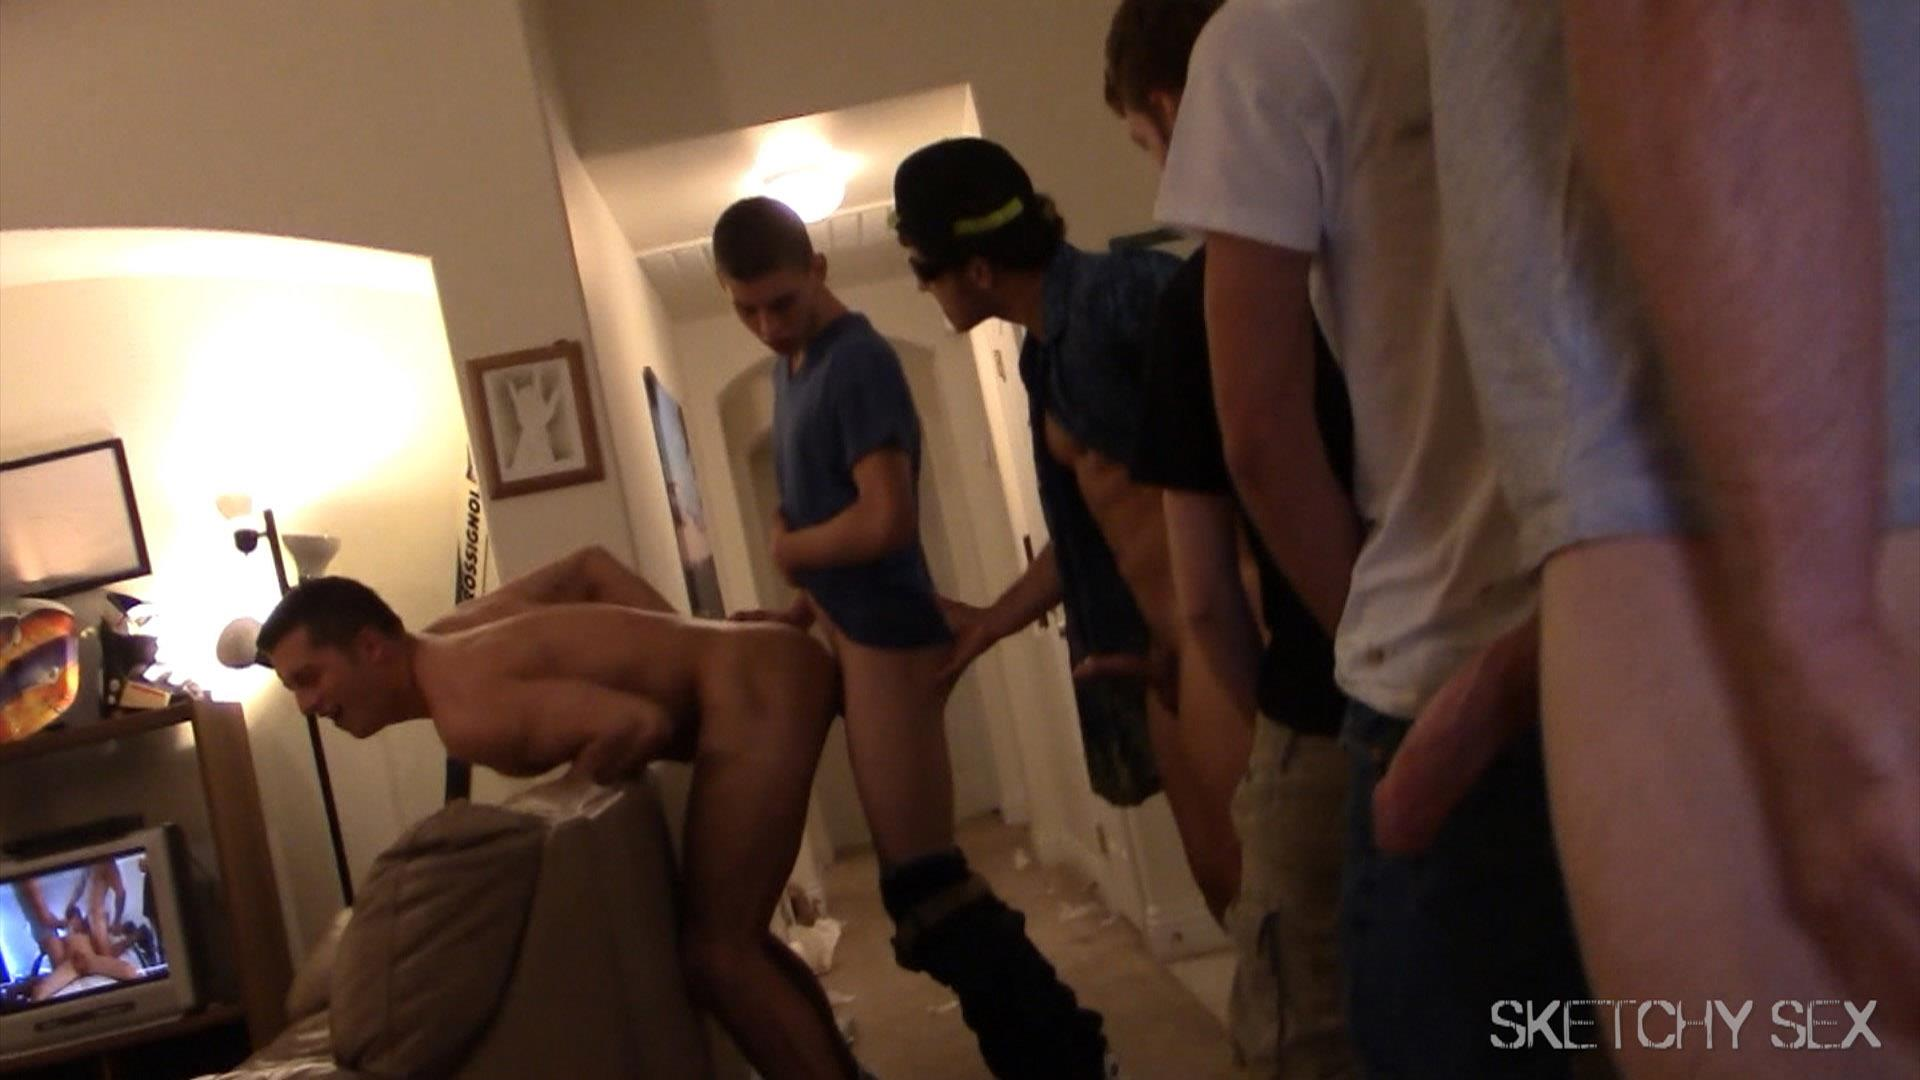 Sketchy Sex Anonymous Bareback Sex Party Amateur Gay Porn 13 What Happens When 2 Bottoms Host An Anonymous Bareback Sex Party?